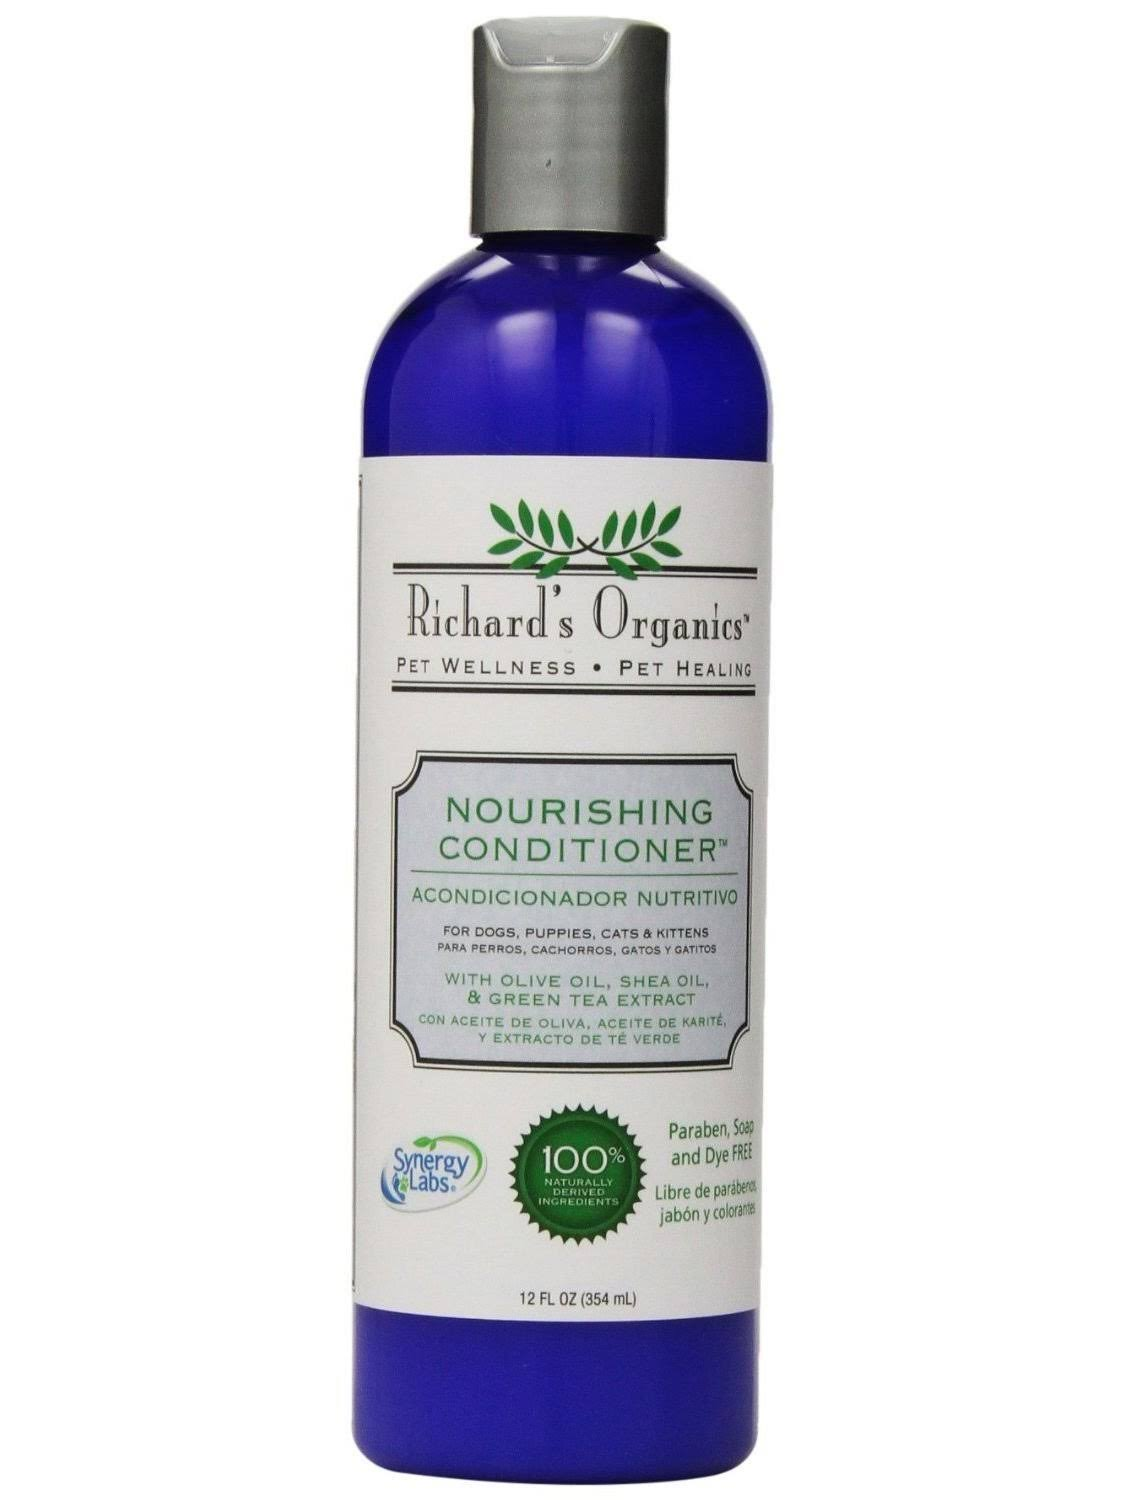 Synergy Labs Richards' Organics Nourishing Conditioner - 12 oz